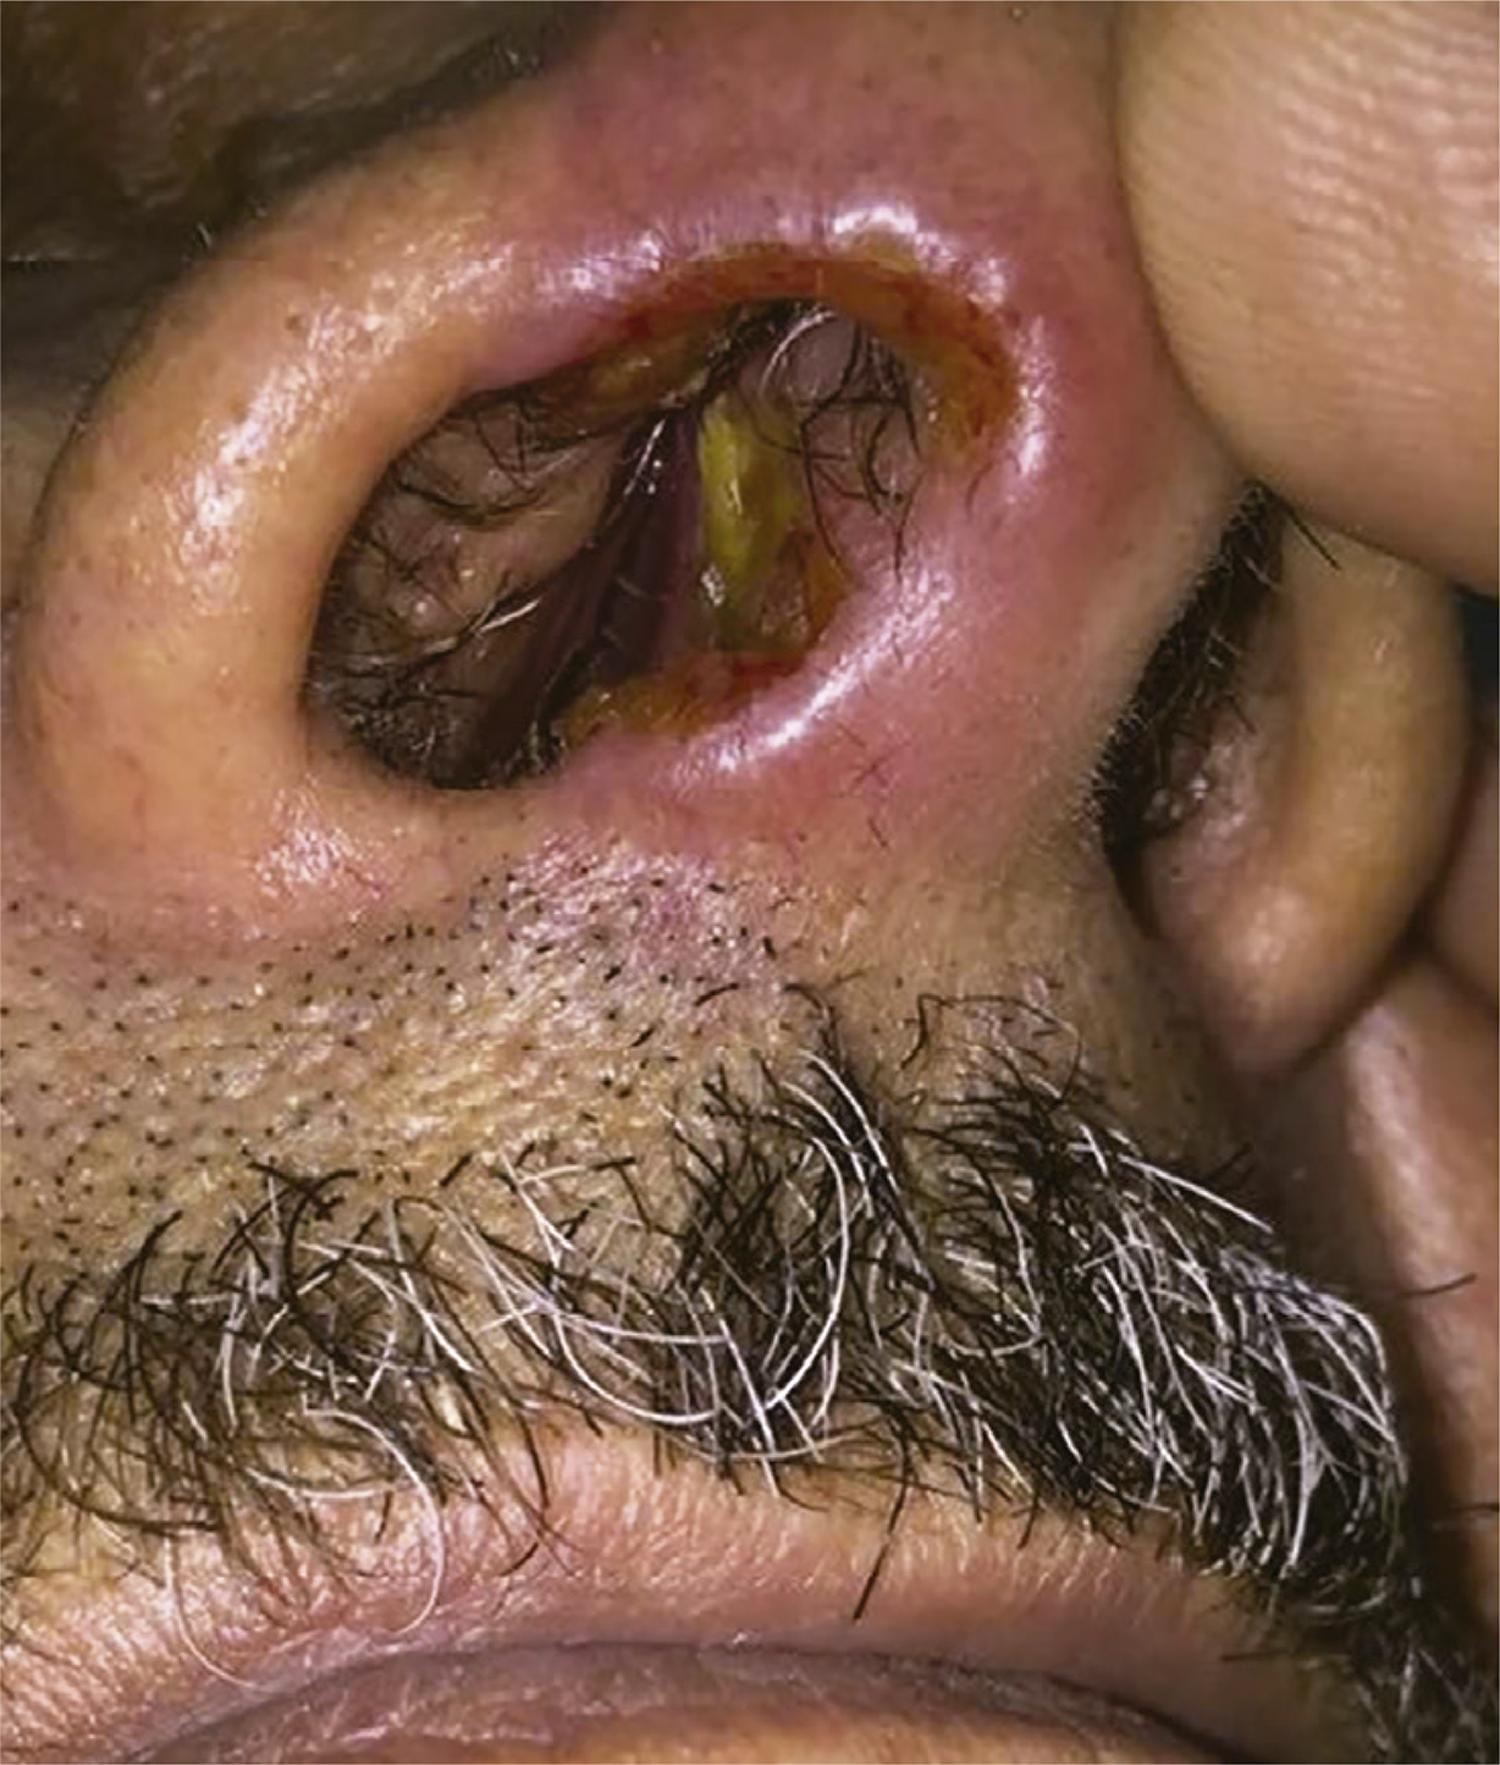 Ulcerative lesion in the right nasal mucosa and skin.